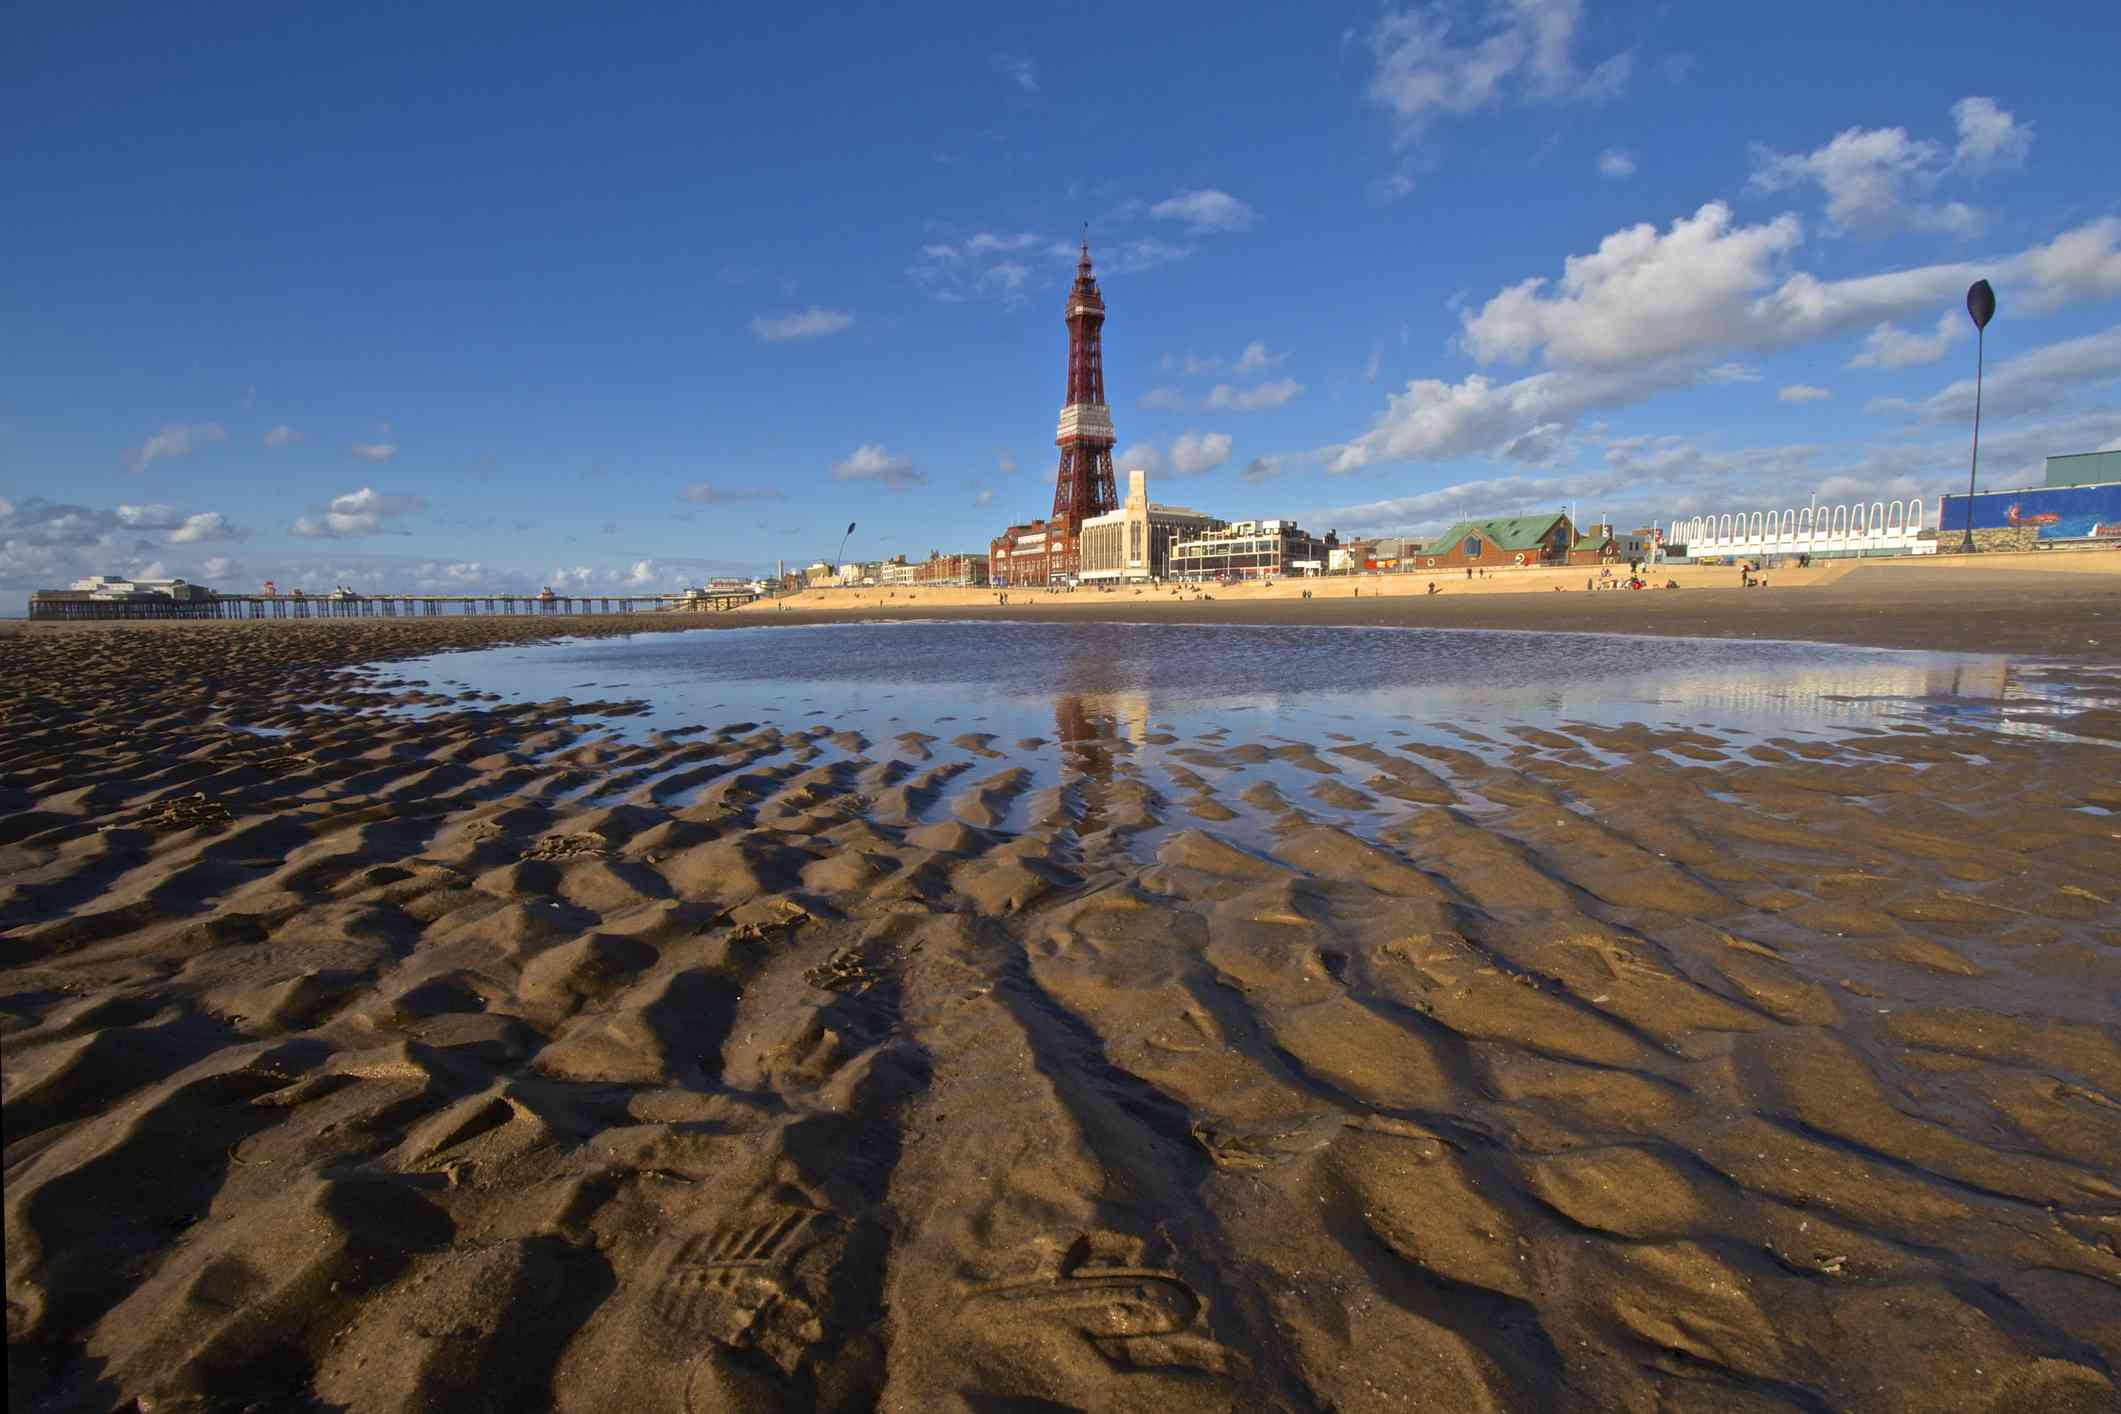 Seaside resort of Blackpool with its iconic Tower dominating the skyline and its promenade and sandy beach